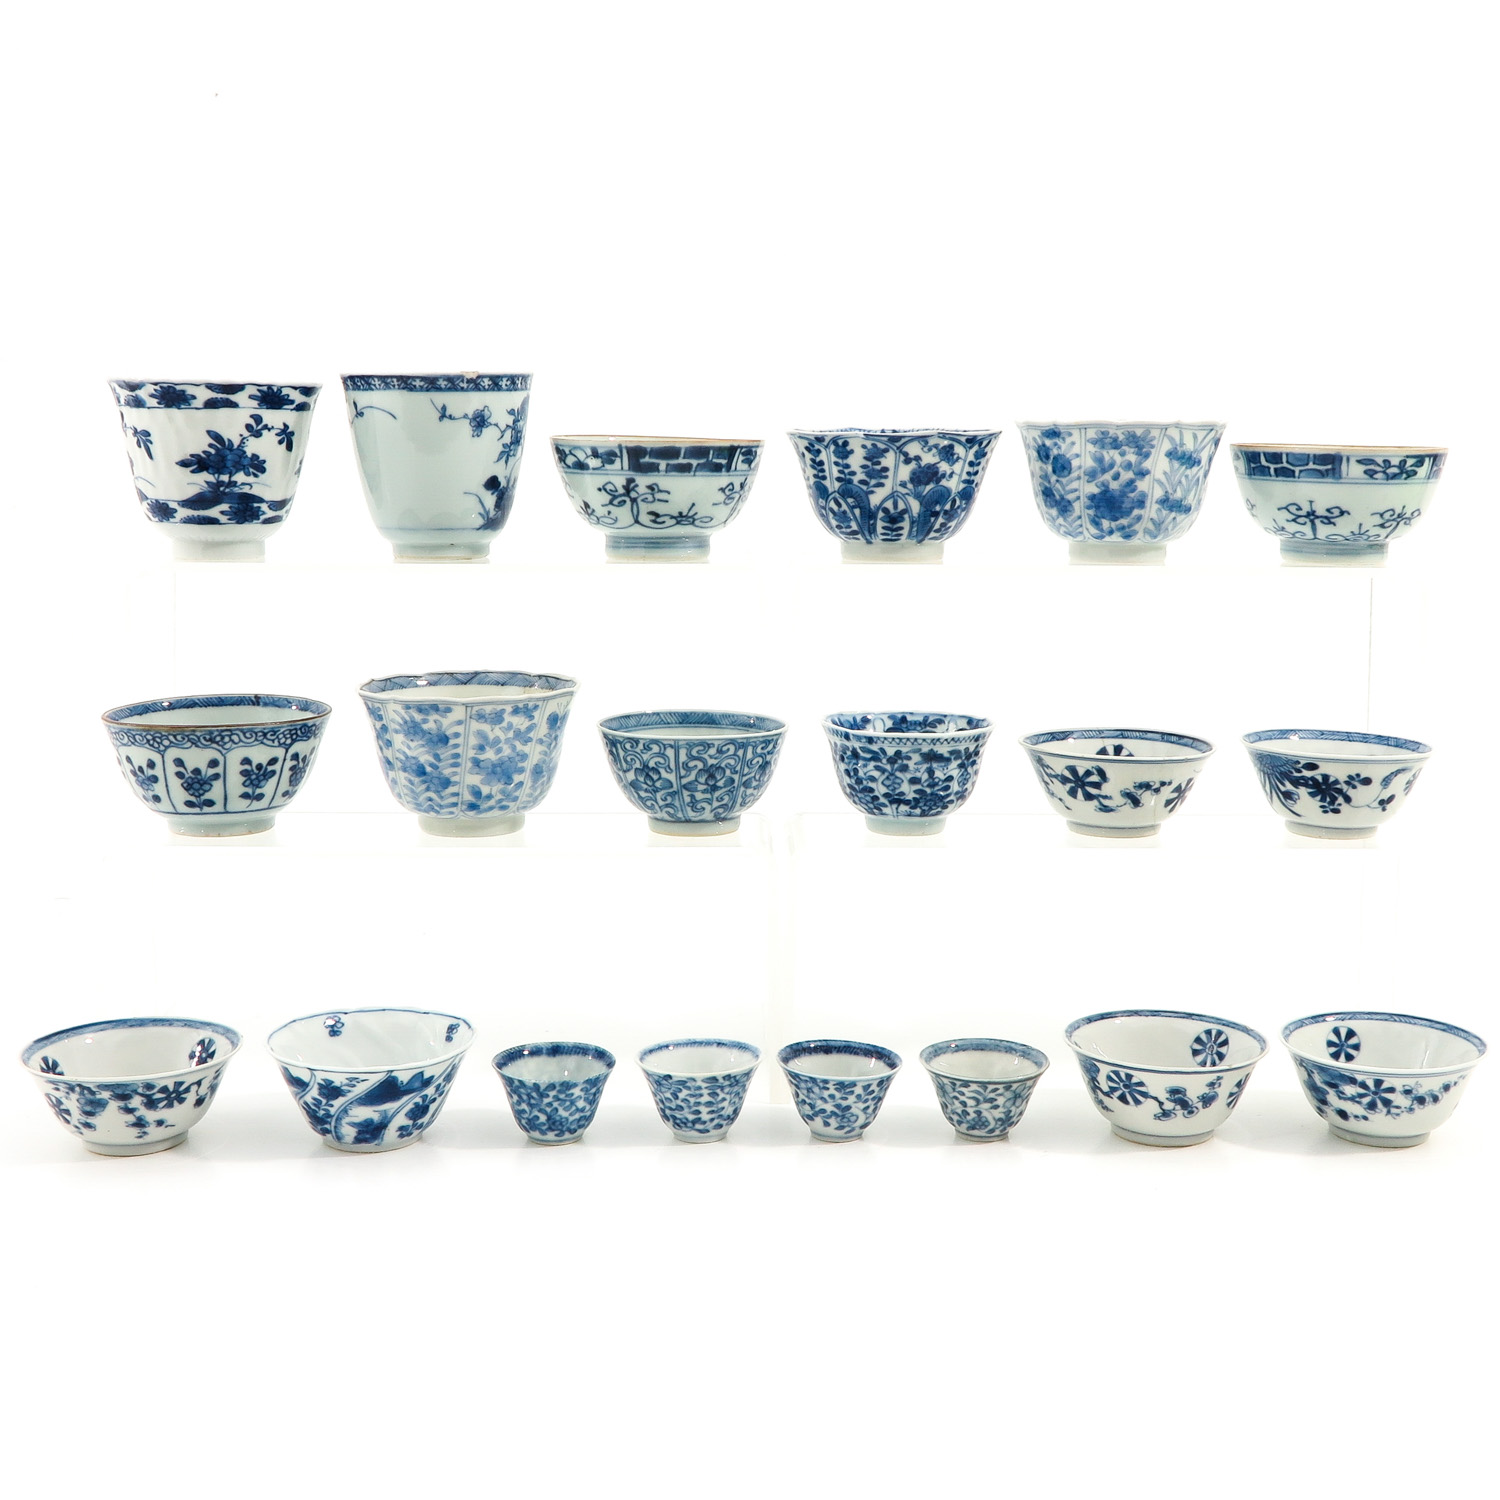 A Collection of 20 Cups - Image 4 of 10